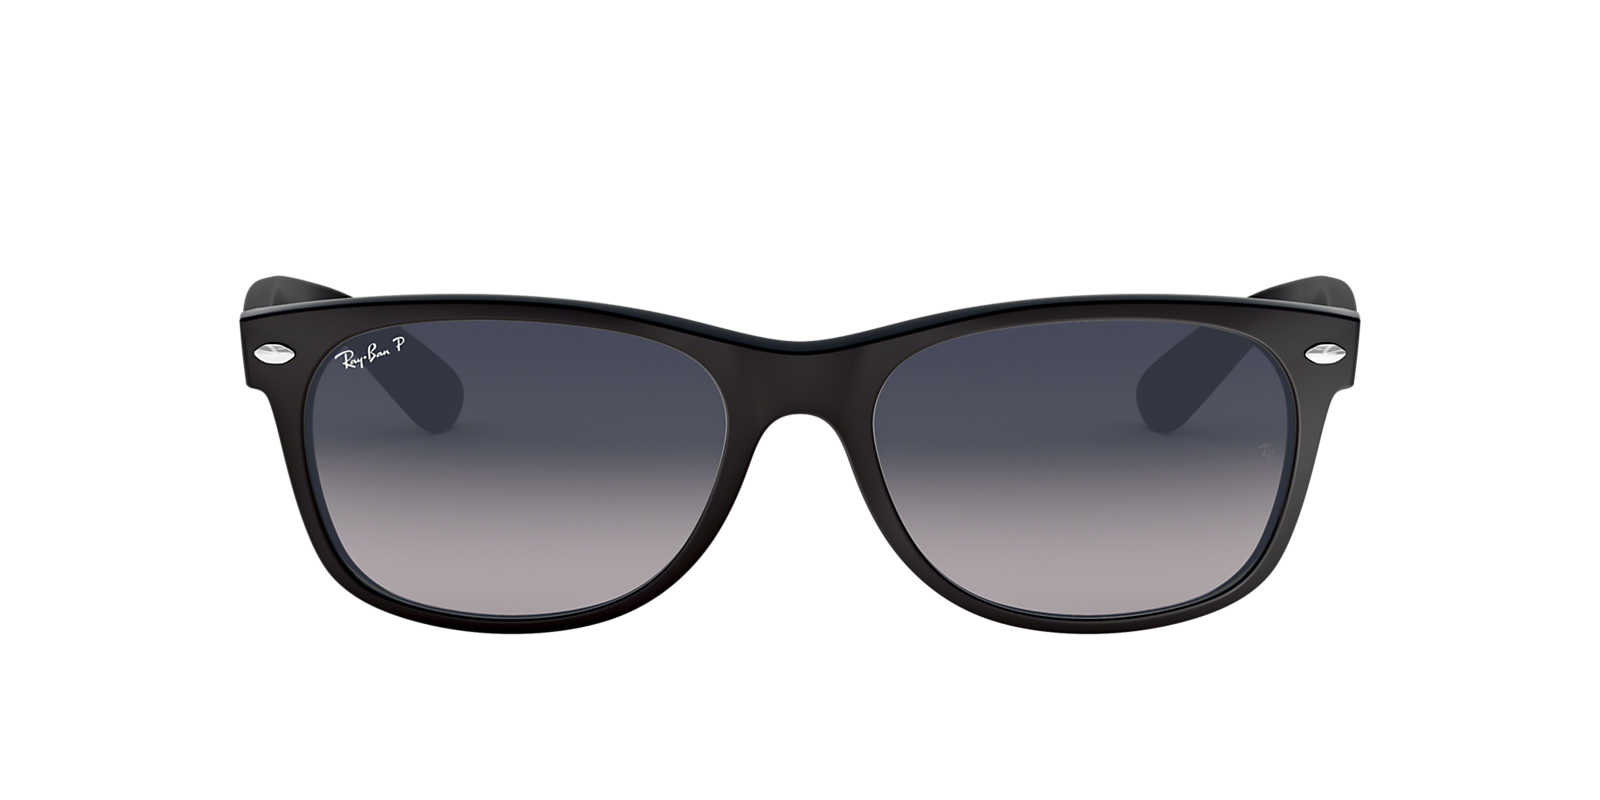 337ec5b3dd1 graphic sunglasses from CH for the summer 2016